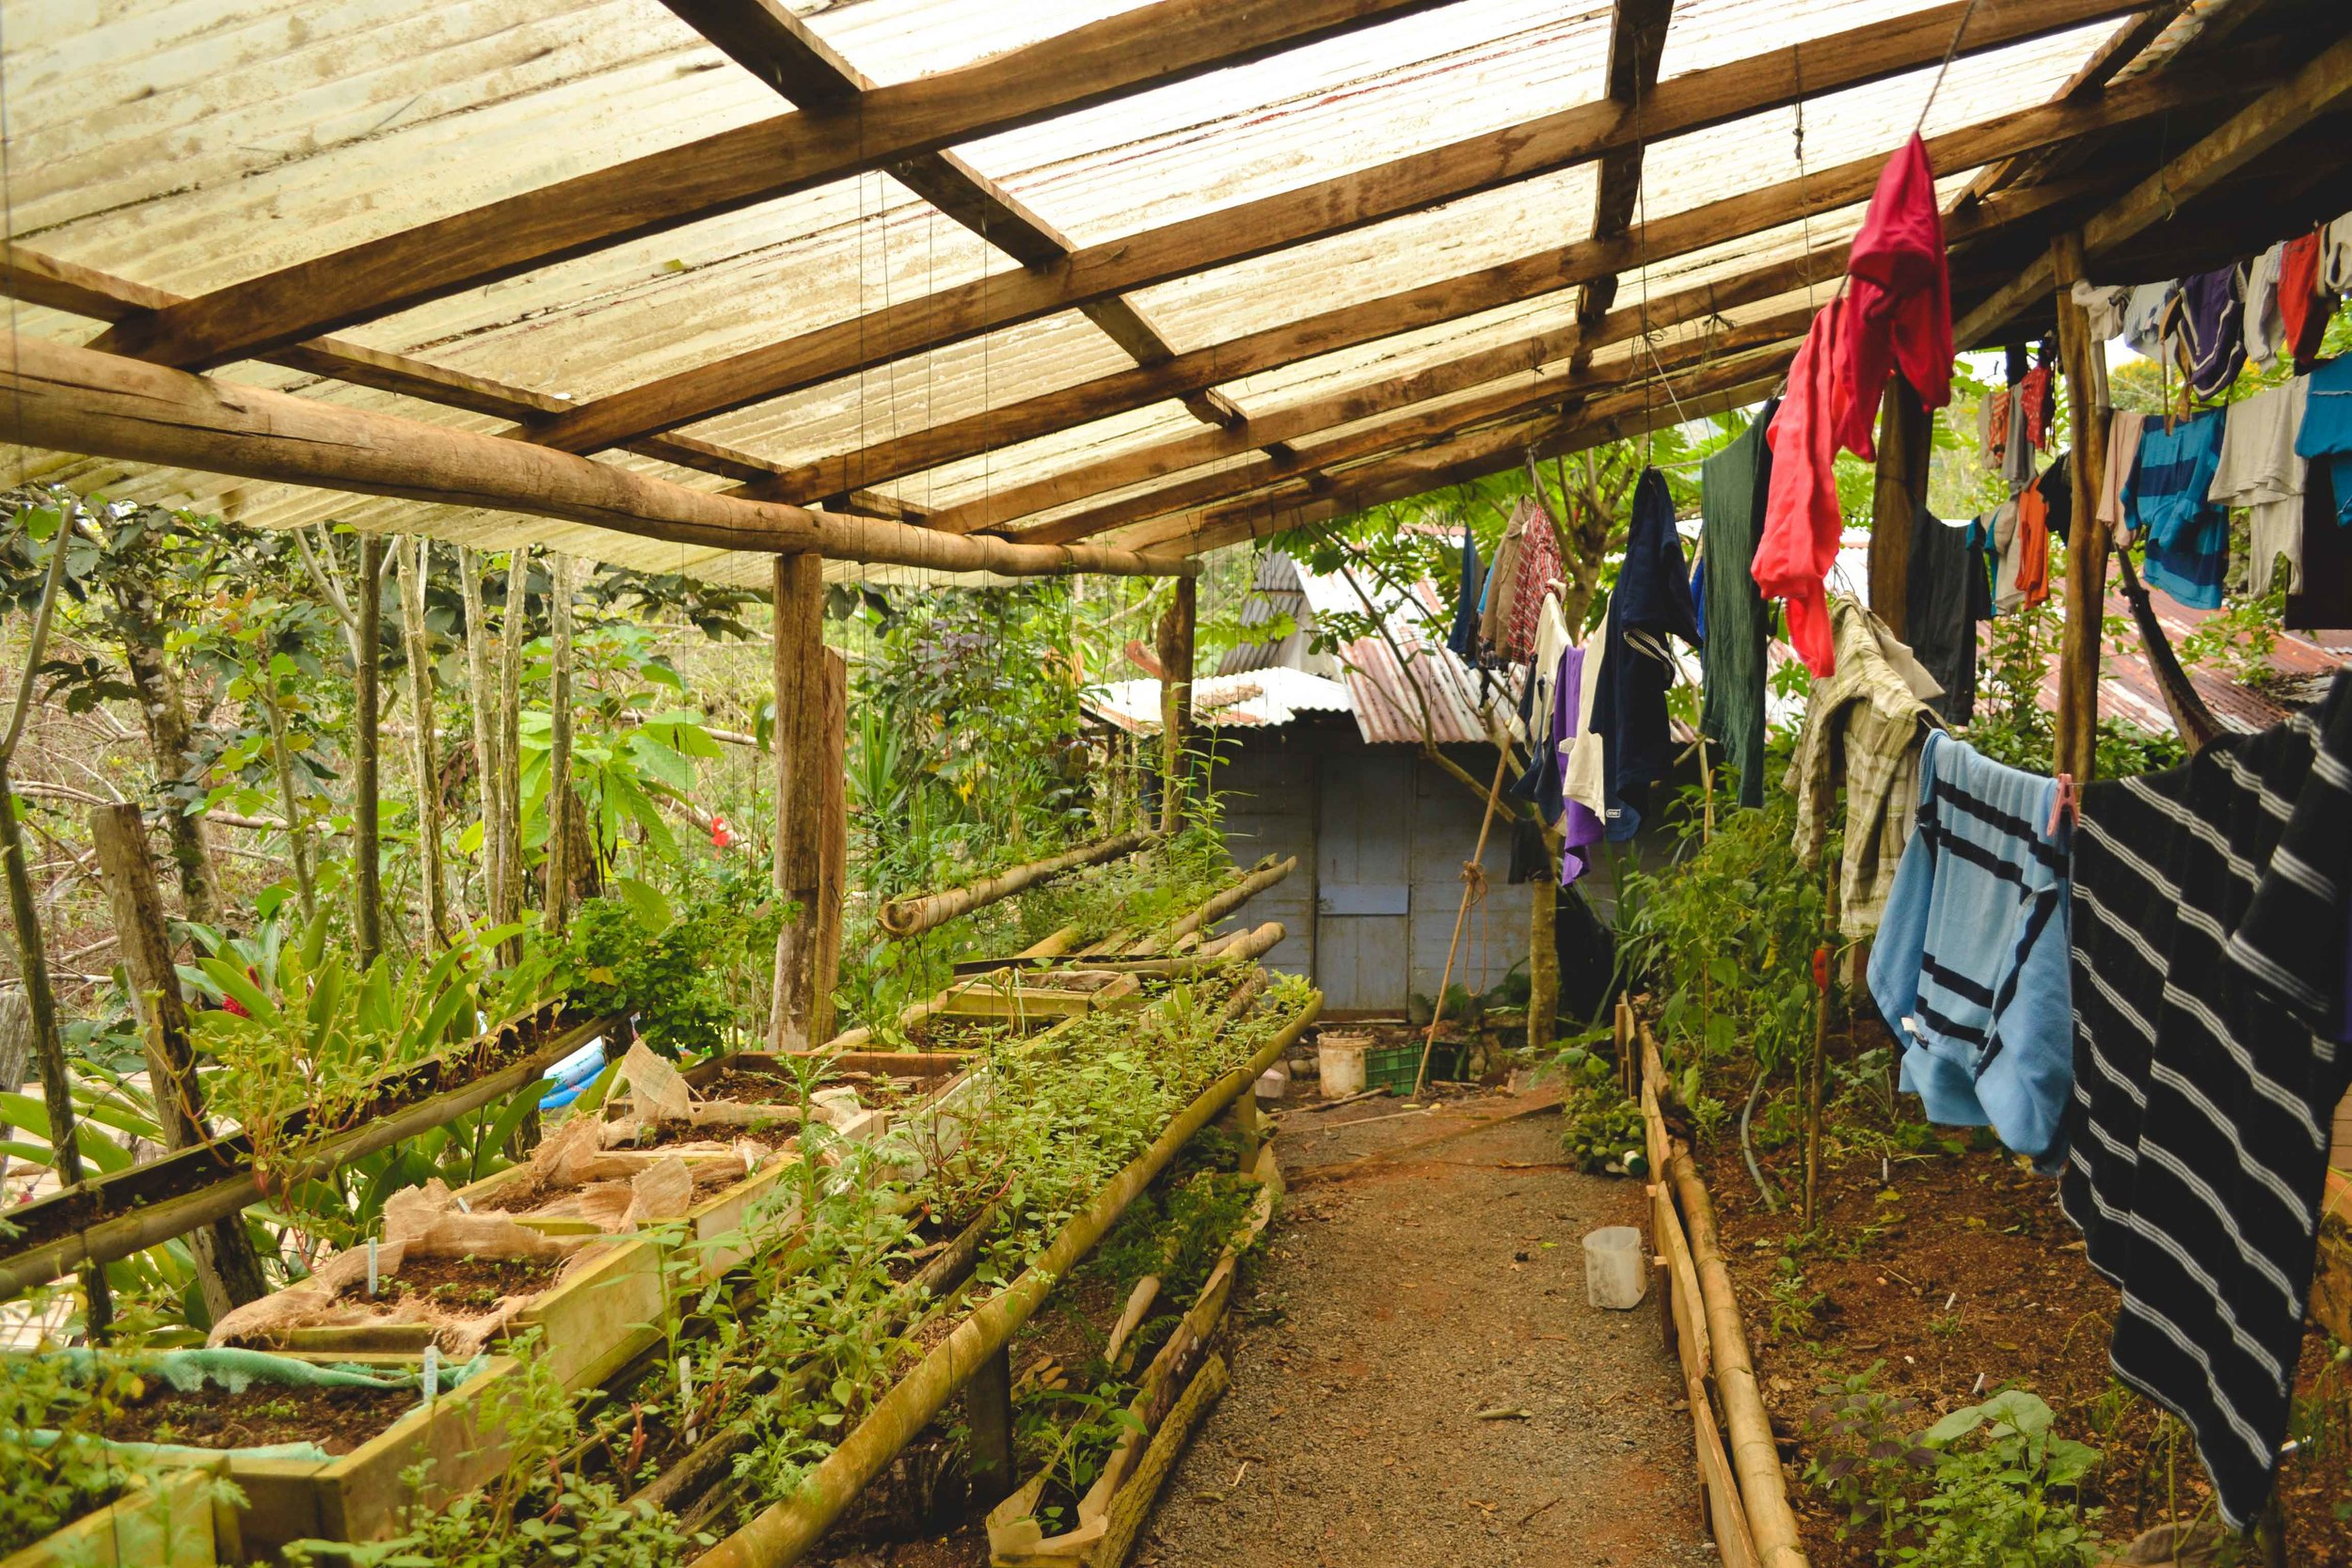 The nursery is where seedlings are started before being transplanted to the larger garden.  It is a covered nursery which makes it great to dry clothes.